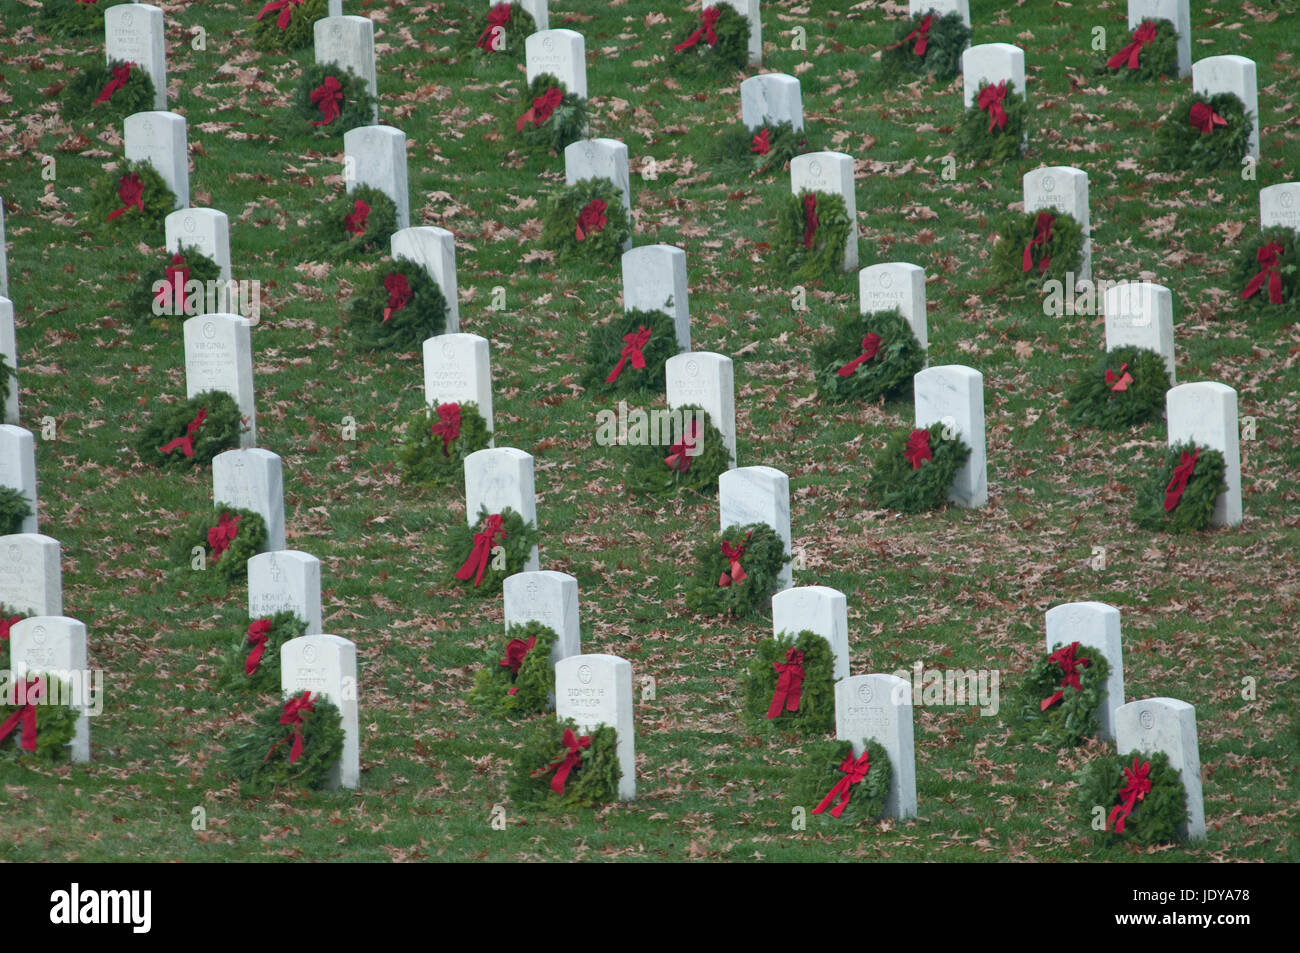 Of Wreaths A Line Of Tombstones With Christmas Wreats Part Of Wreaths Across